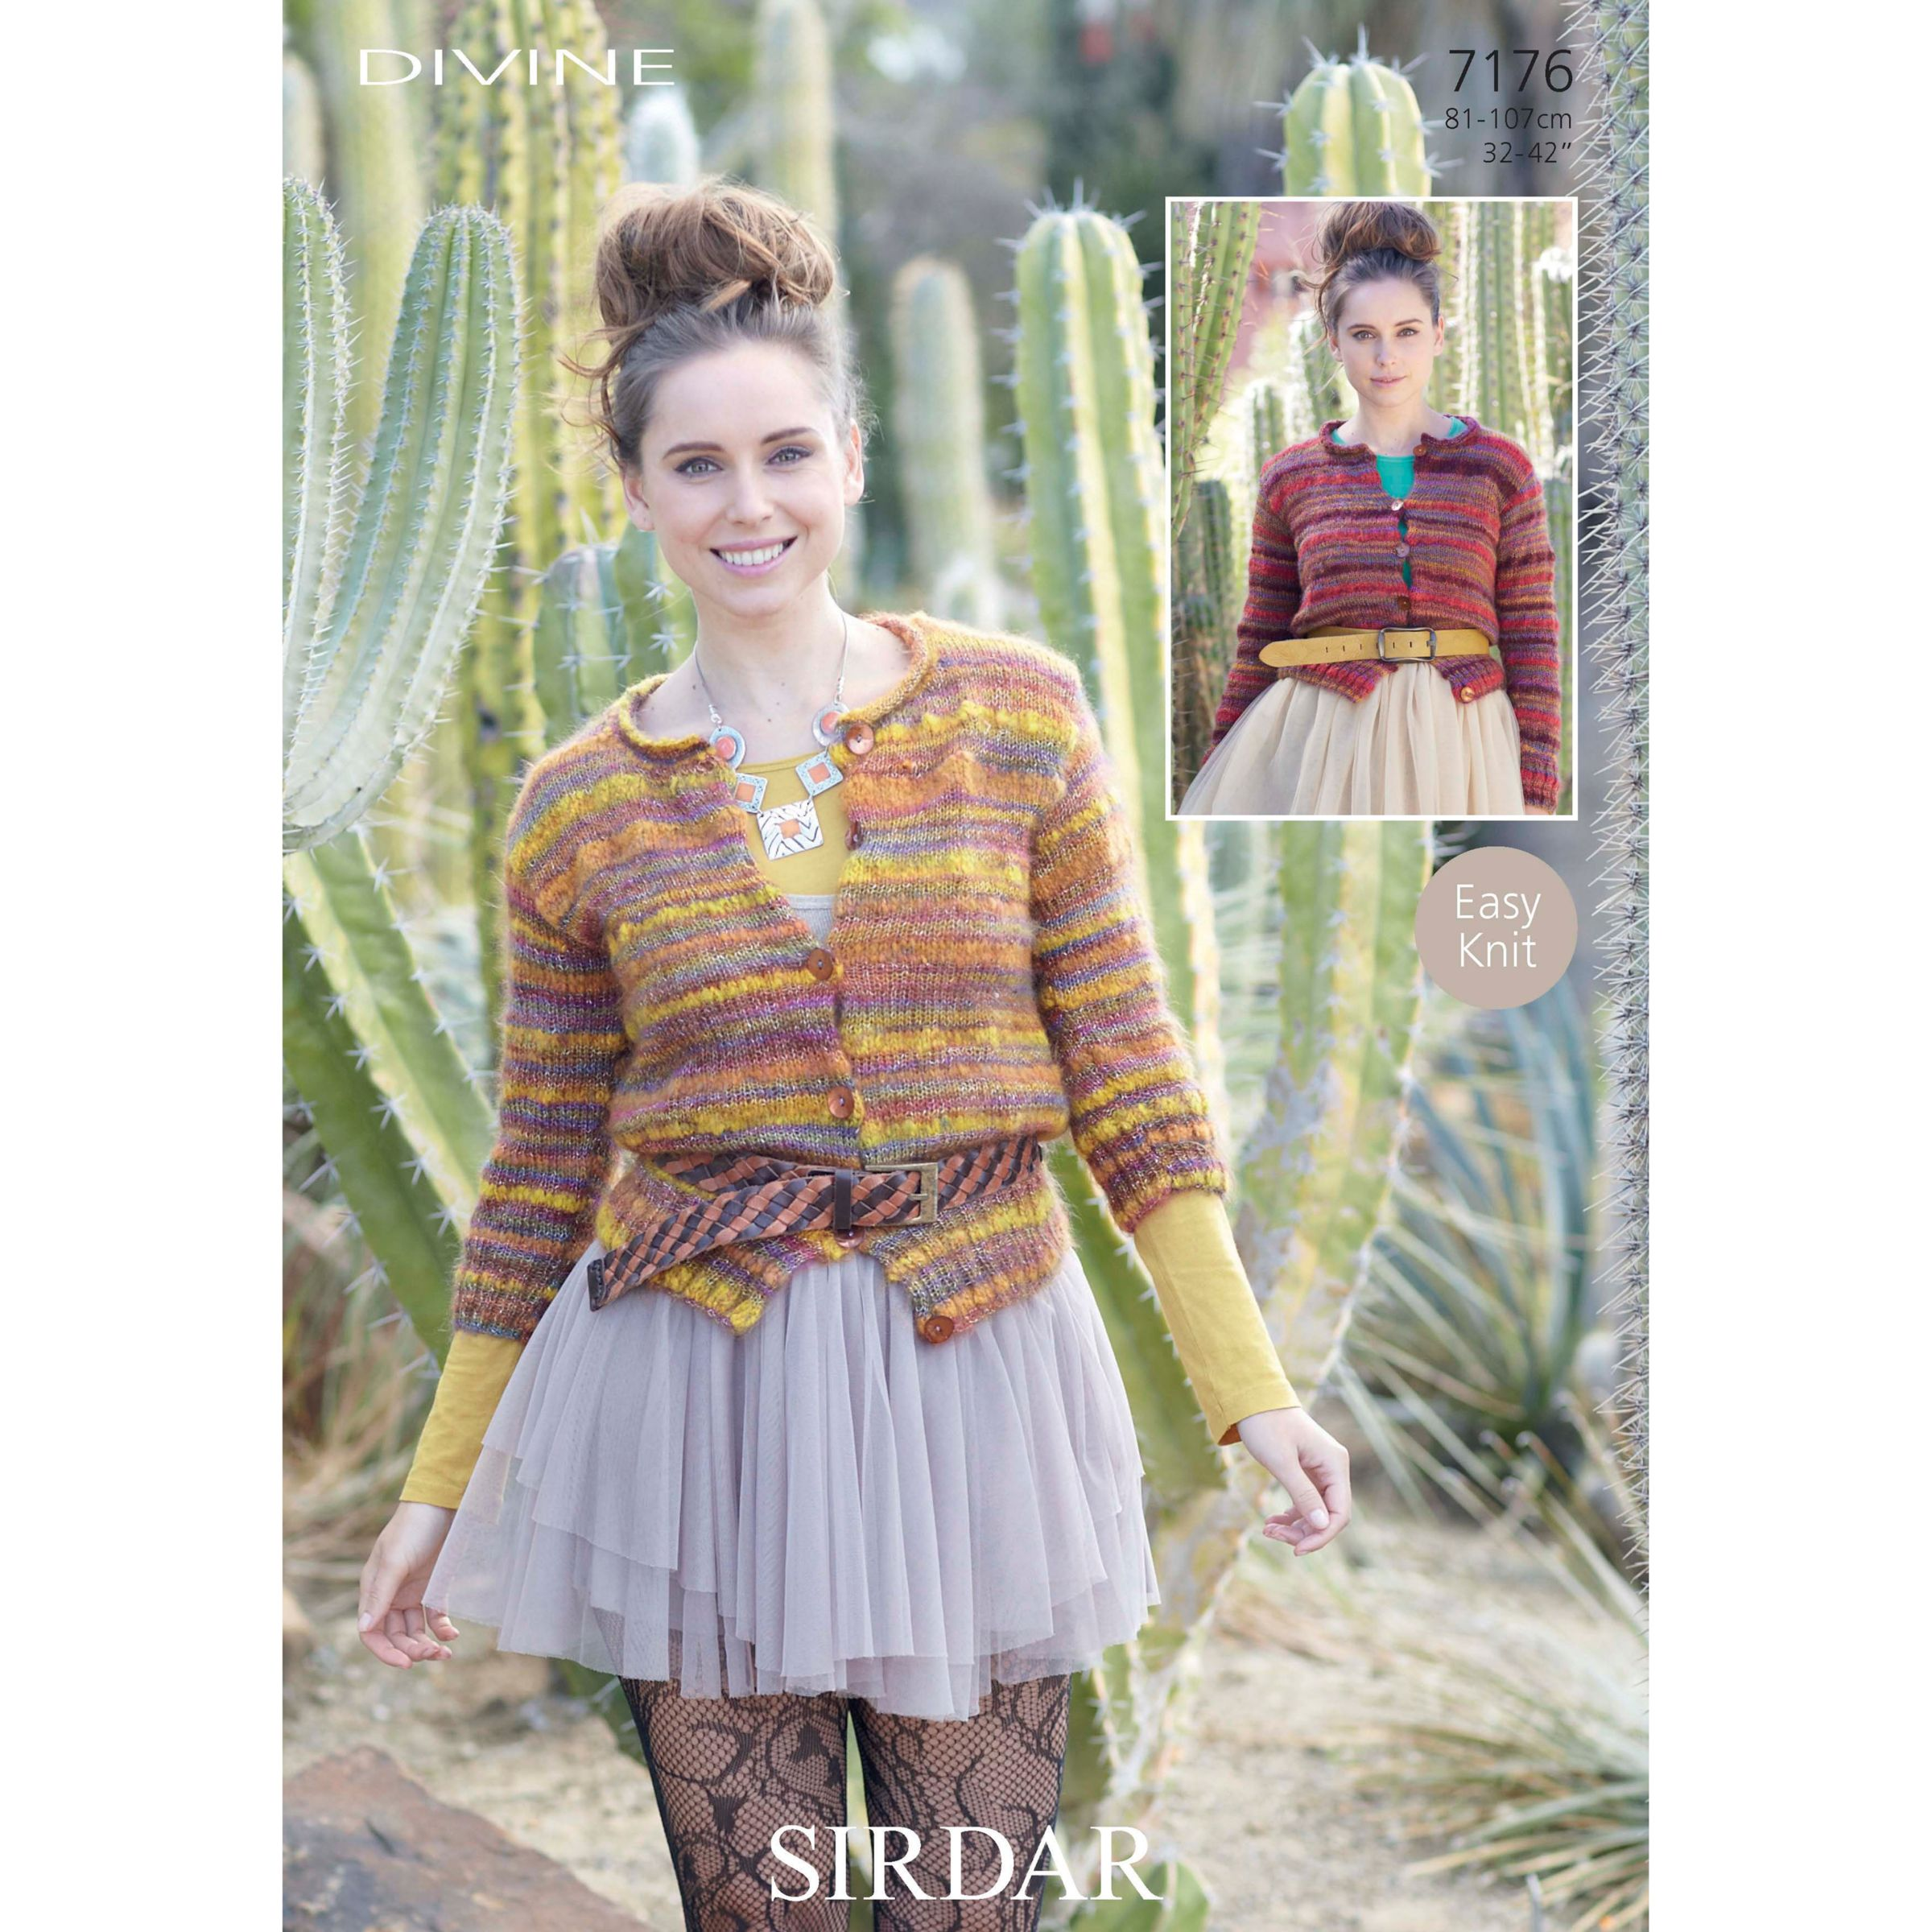 Sirdar Ladies Knitting Patterns : Buy Sirdar Womens Cardigan Knitting Pattern, 7176 John Lewis